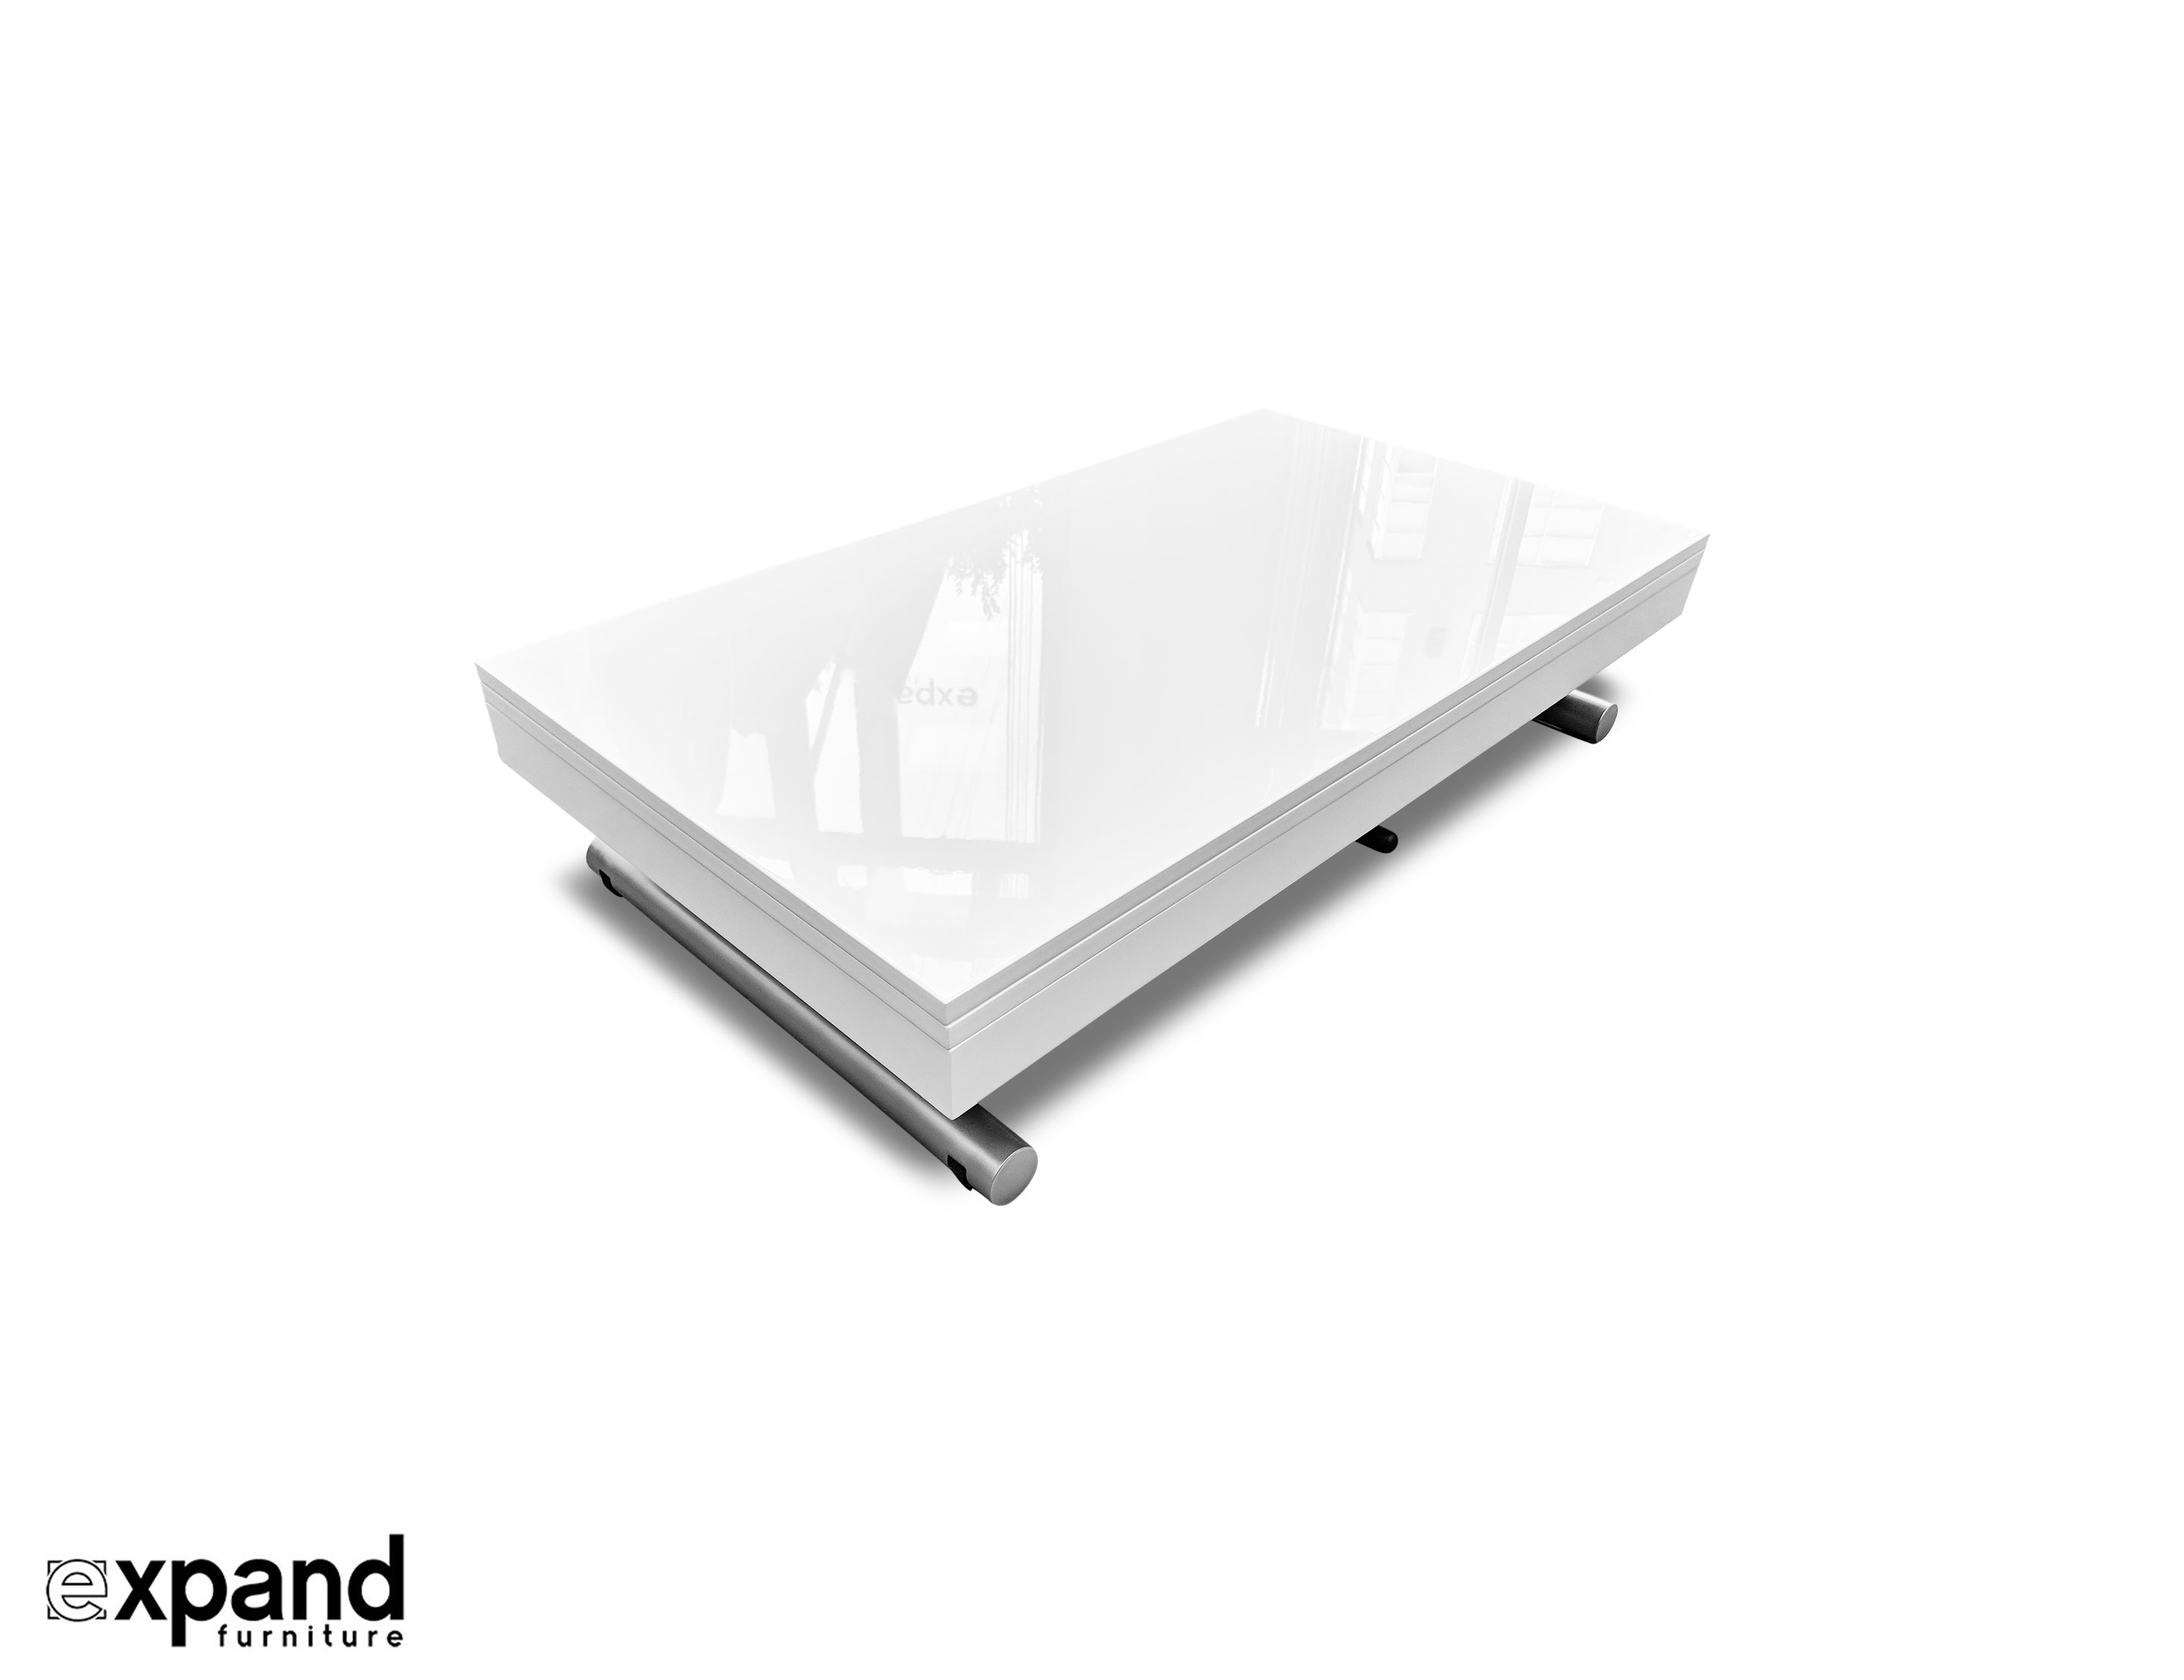 Alzare Small Transforming Coffee Table Expand Furniture Folding